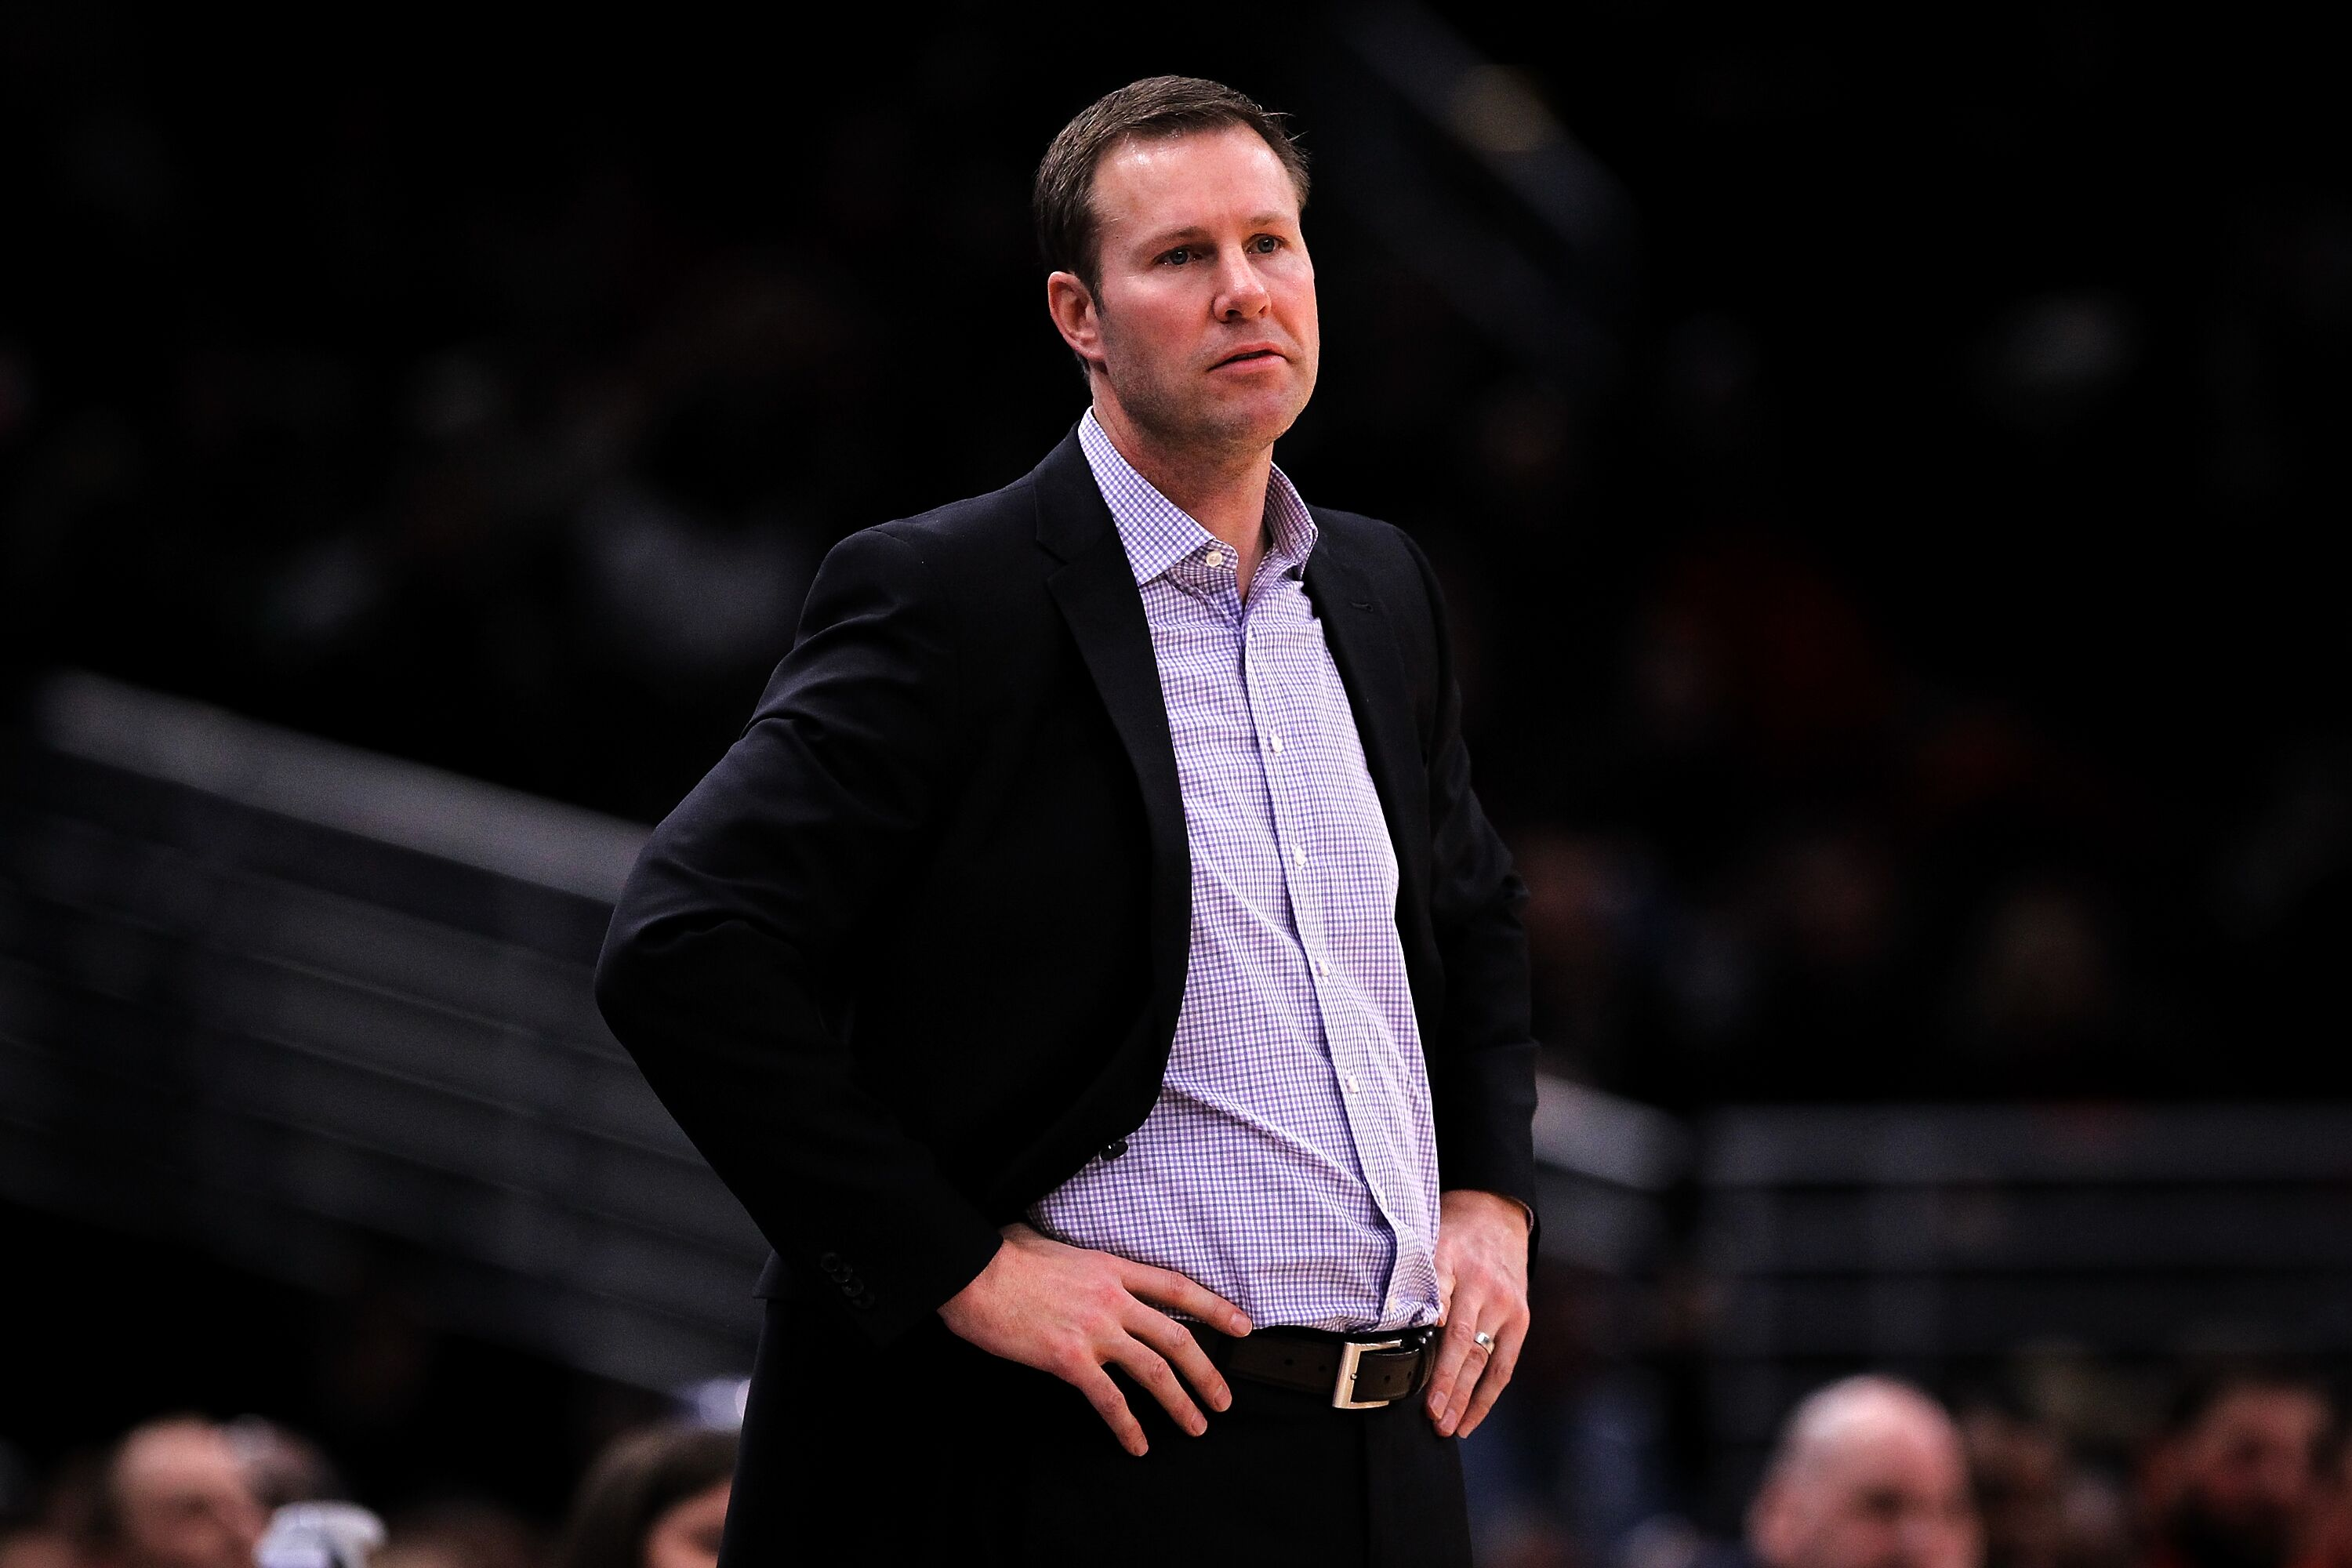 CHICAGO, IL - JANUARY 01: Head coach Fred Hoiberg of the Chicago Bulls looks on in the fourth quarter against the Portland Trail Blazers at the United Center on January 1, 2018 in Chicago, Illinois. NOTE TO USER: User expressly acknowledges and agrees that, by downloading and or using this photograph, User is consenting to the terms and conditions of the Getty Images License Agreement. (Photo by Dylan Buell/Getty Images)